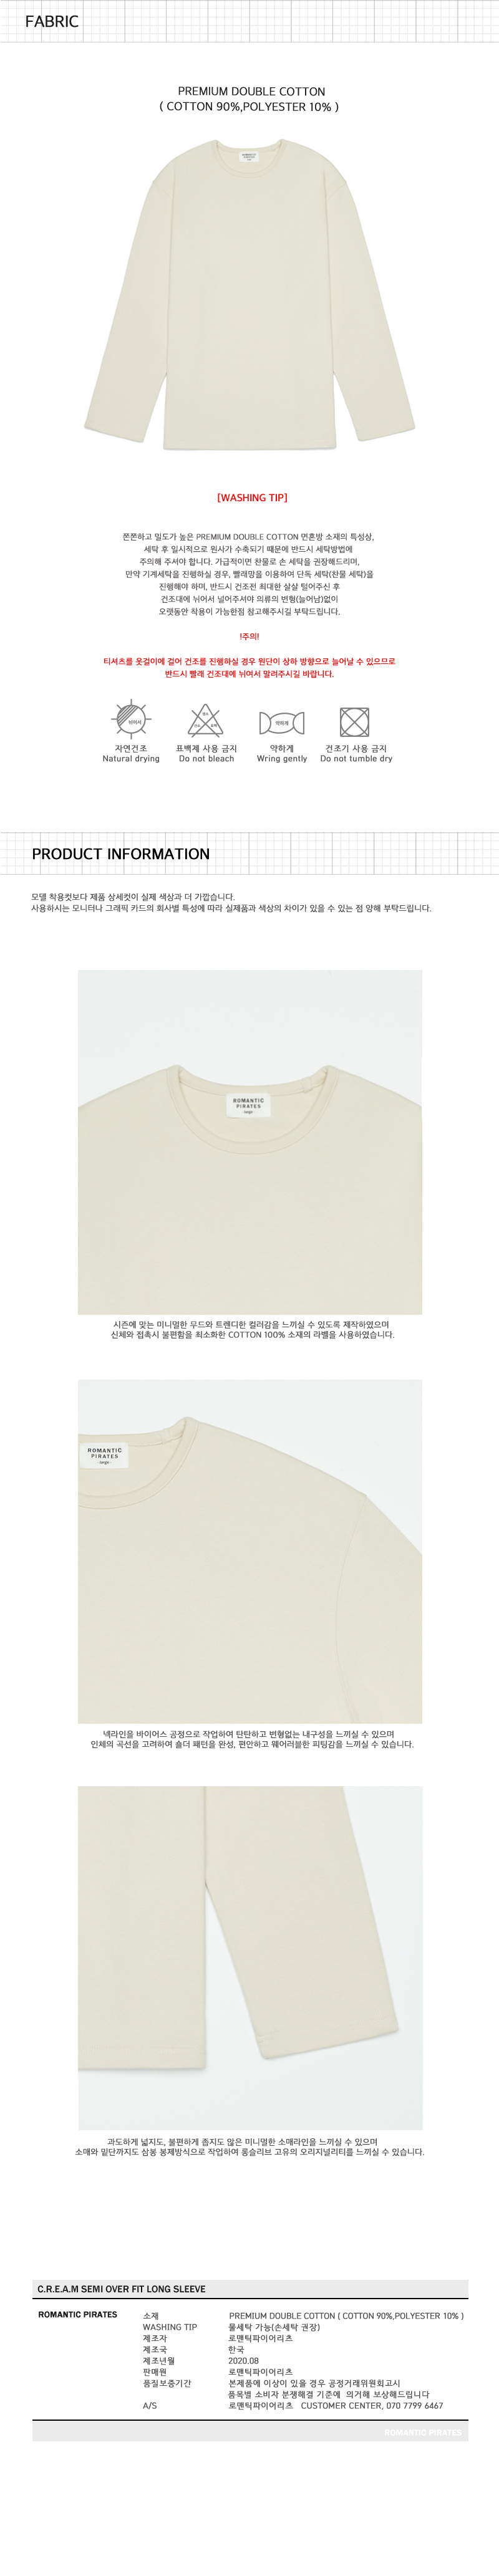 로맨틱 파이어리츠(ROMANTICPIRATES) C.r.e.a.m SEMI OVER FIT LONG SLEEVE(SOY CREAM)